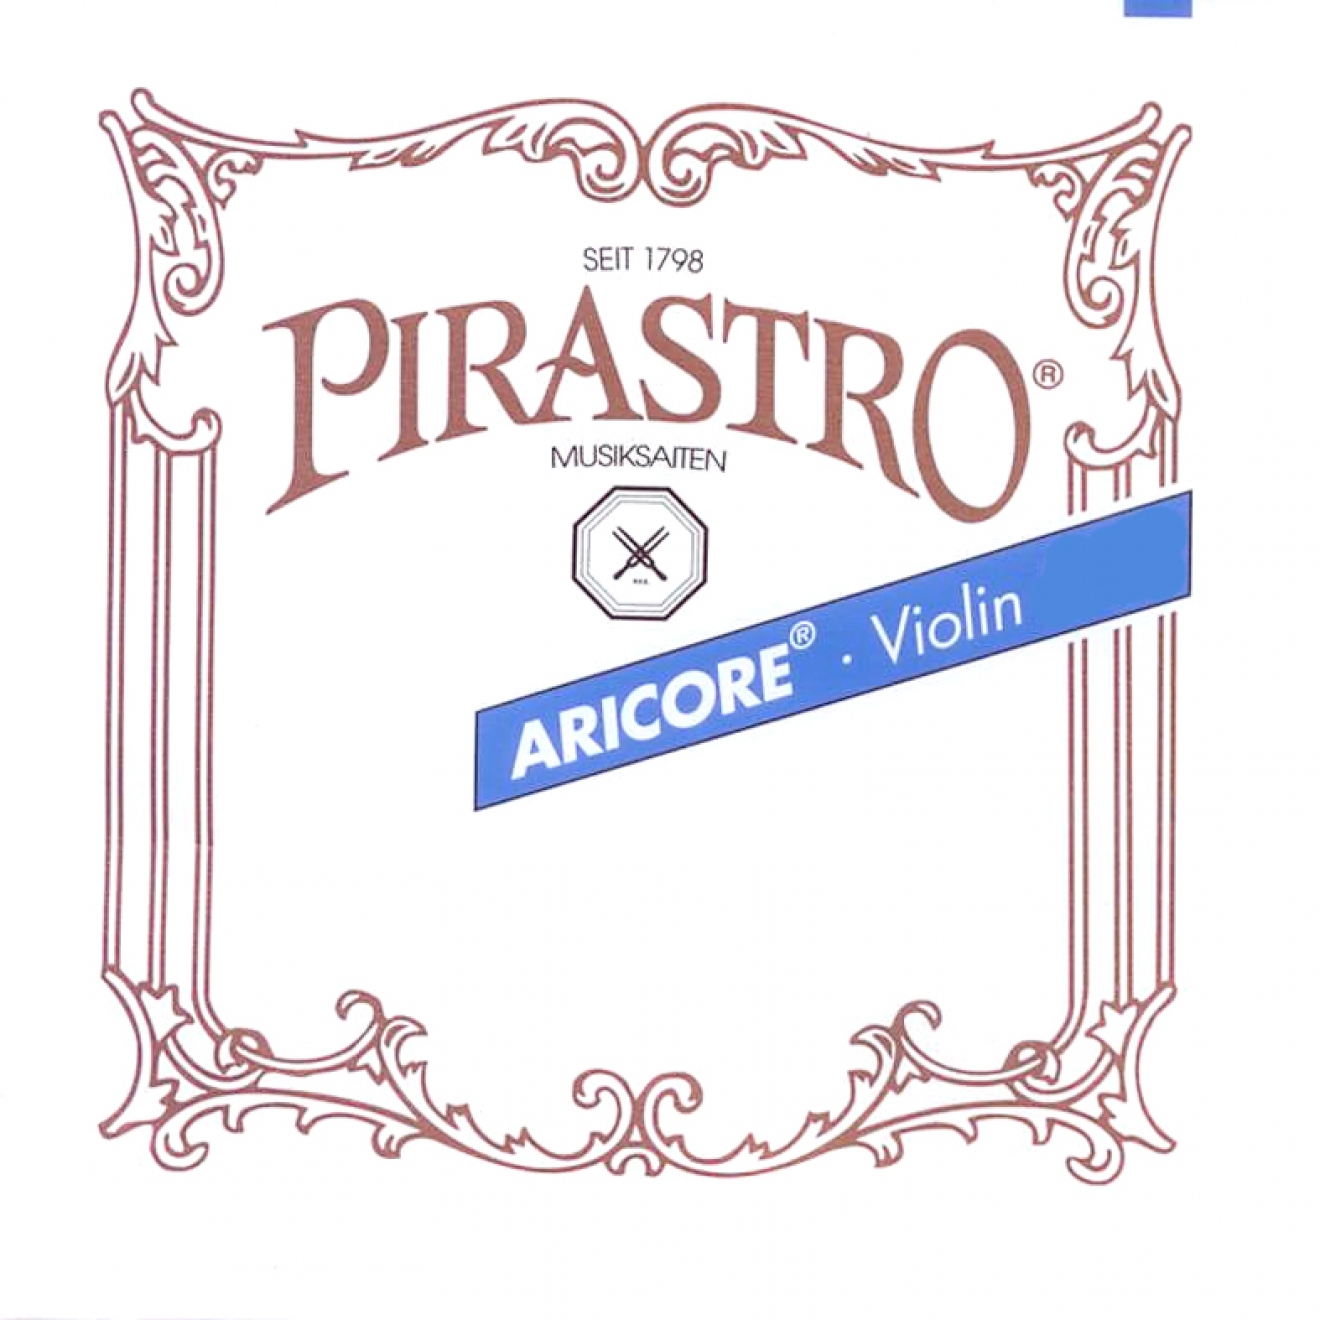 PIRASTRO Aricore Violin SET